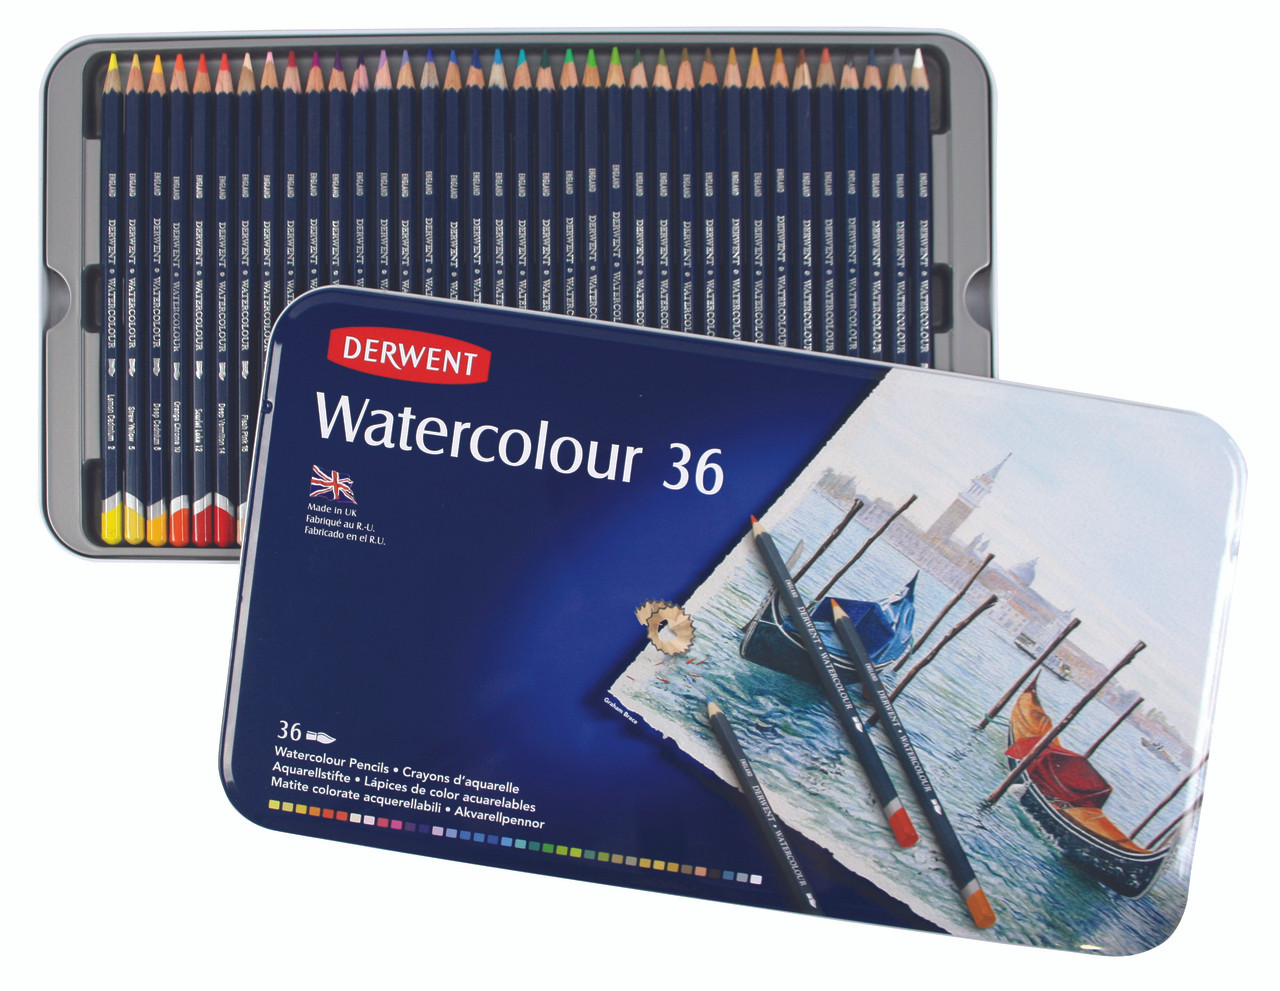 Derwent Watercolor Pencil 36pc Tin